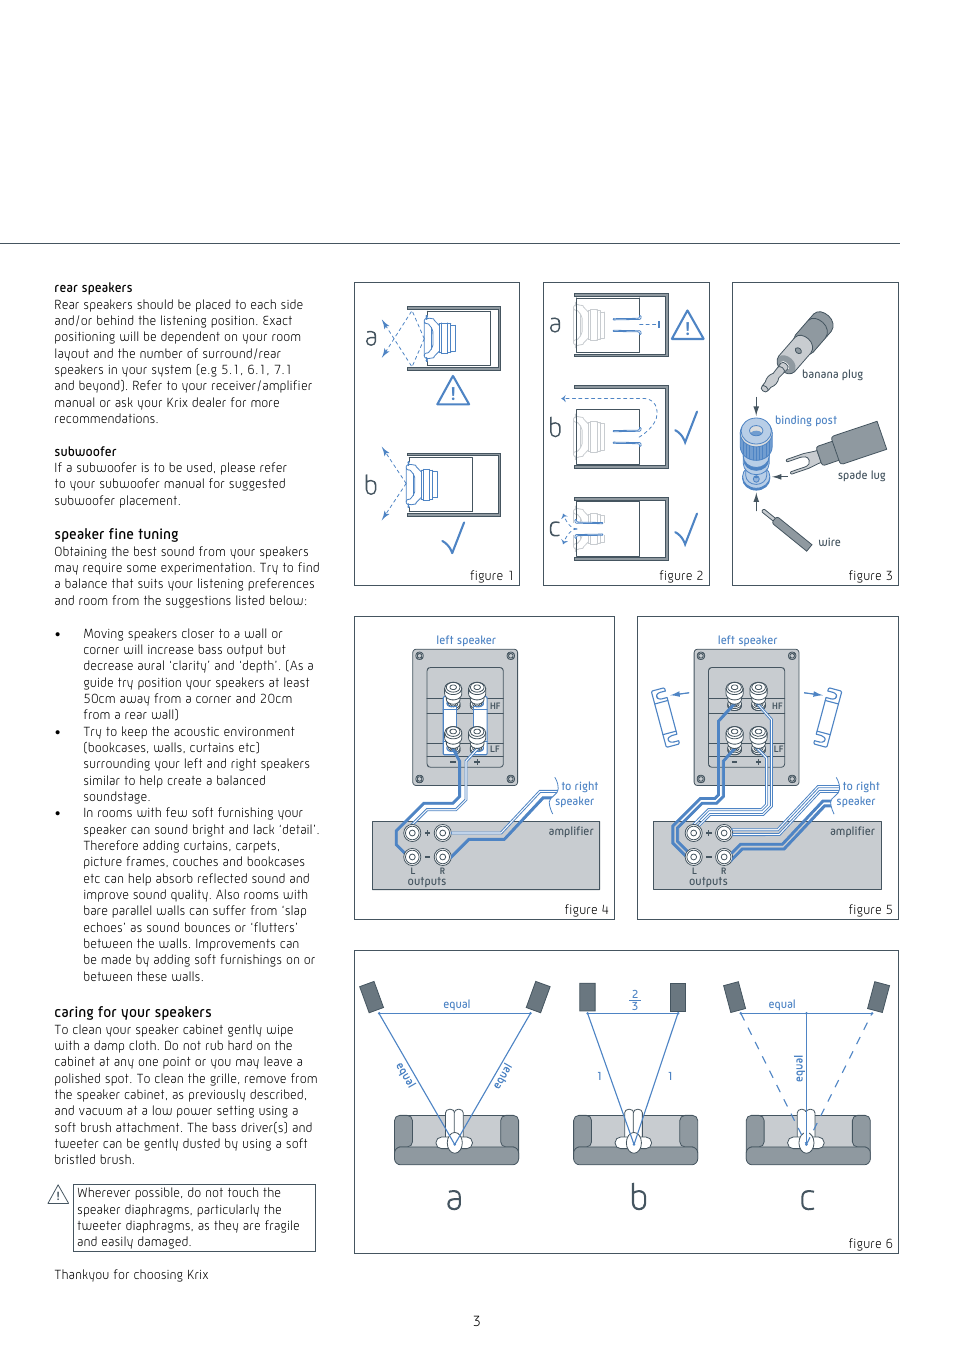 Krix Holographix User Manual | Page 3 / 4 | Original mode